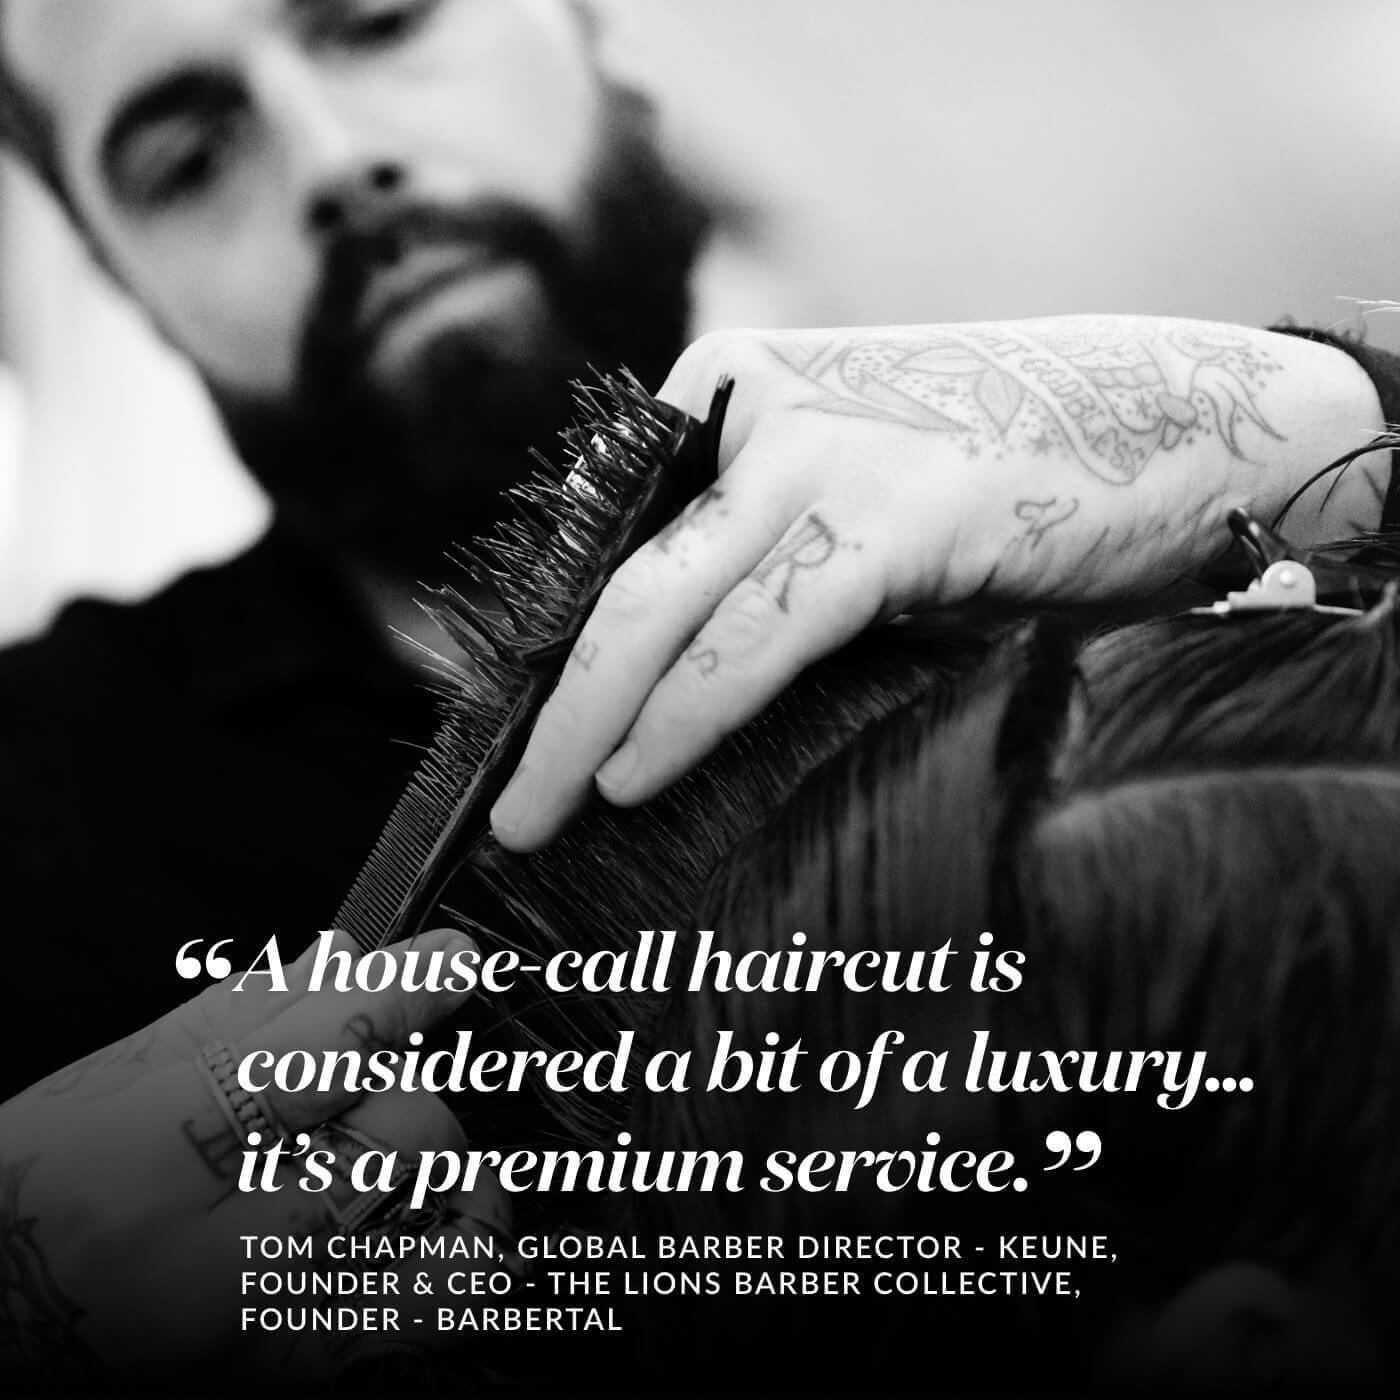 Tom Chapman talks the pros of house-call haircuts and treatments